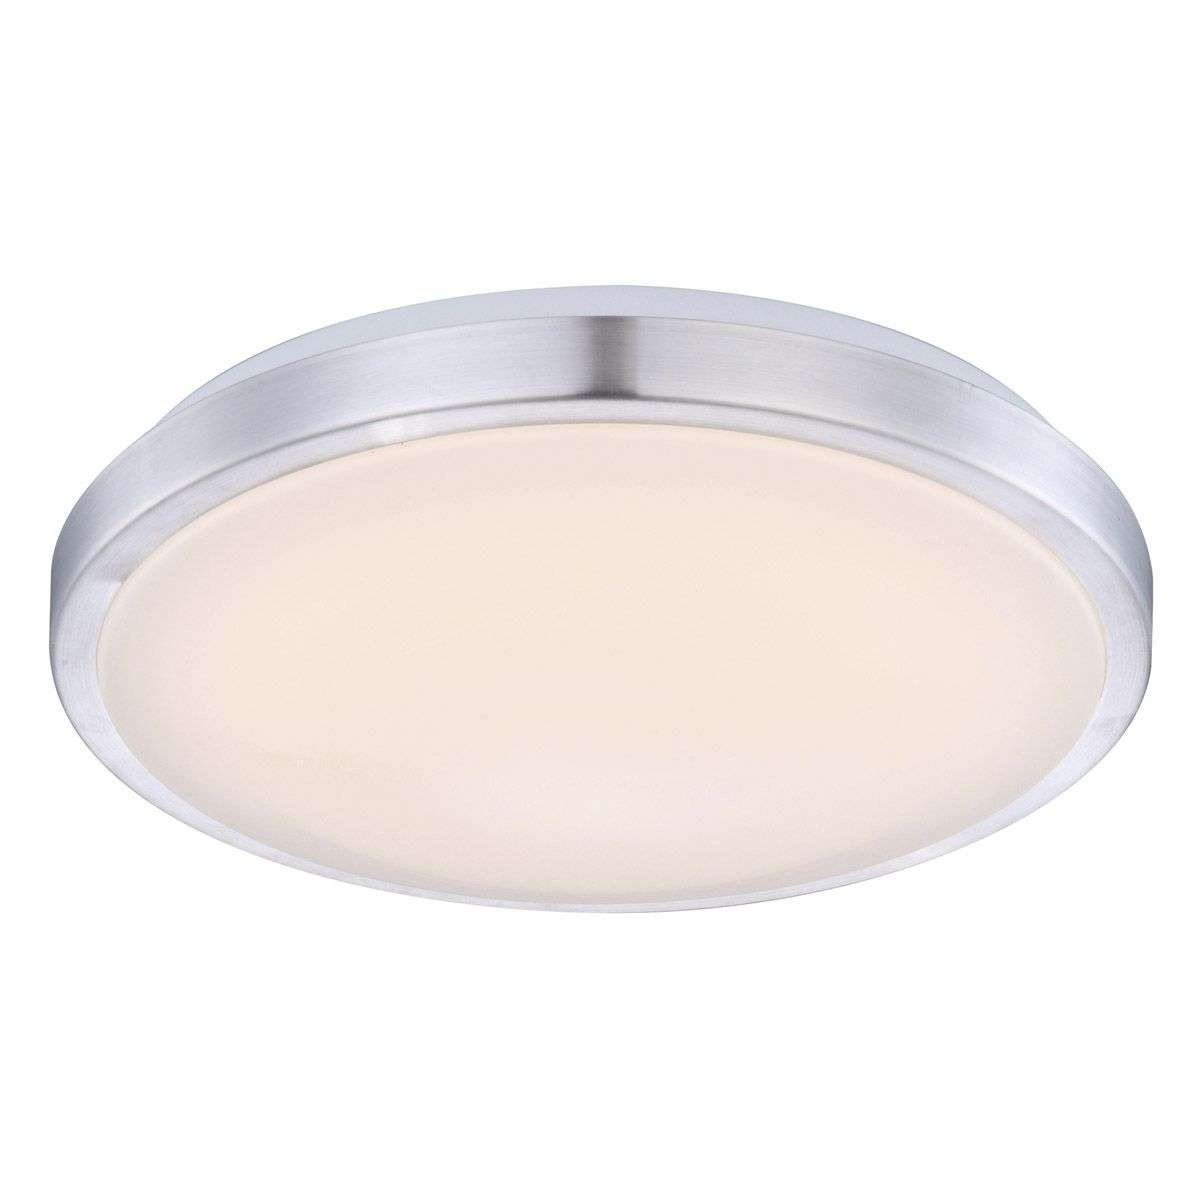 Round milano led bathroom ceiling light ip44 lights round milano led bathroom ceiling light ip44 aloadofball Image collections